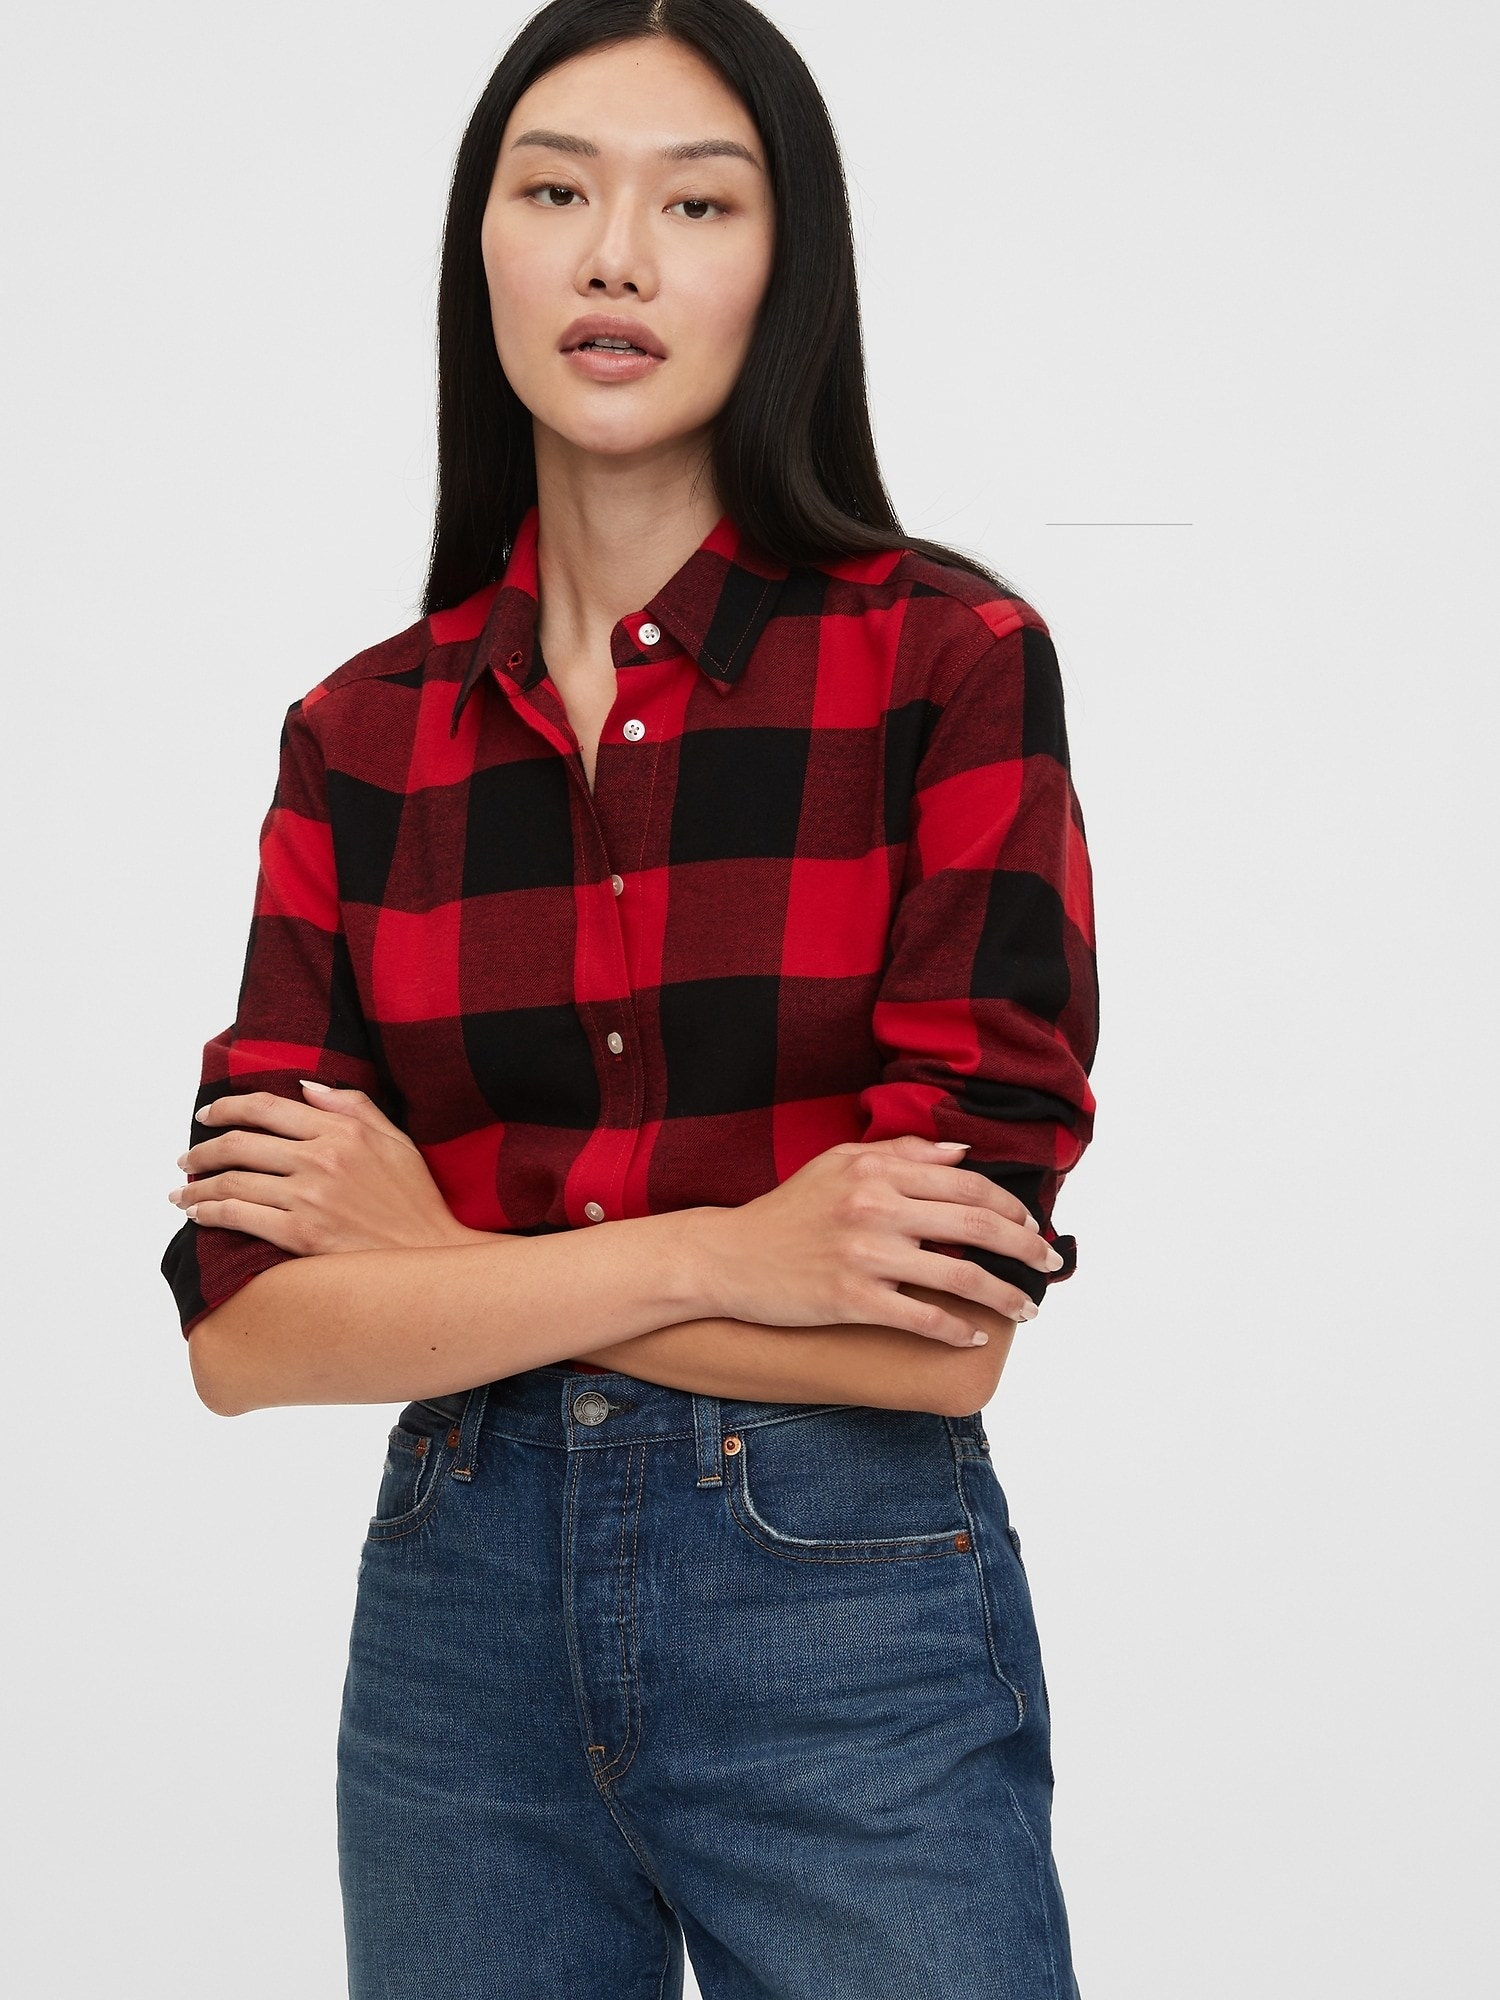 a model ina. red and black buffalo check flannel